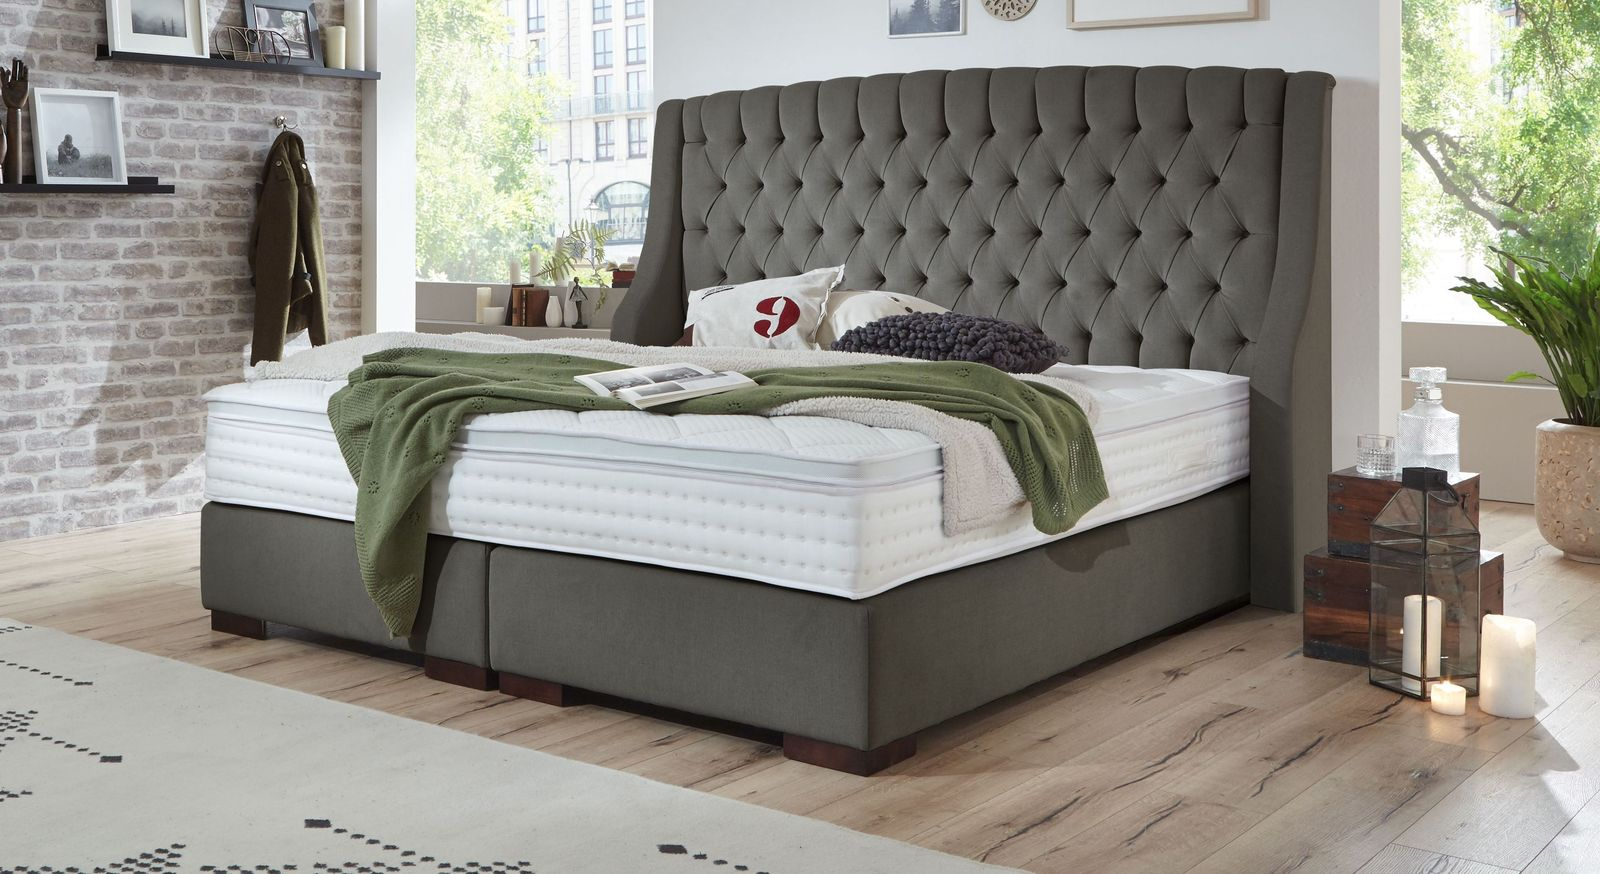 Boxspringbett Bridgeport aus anthrazitfarbenem Velours-Webstoff